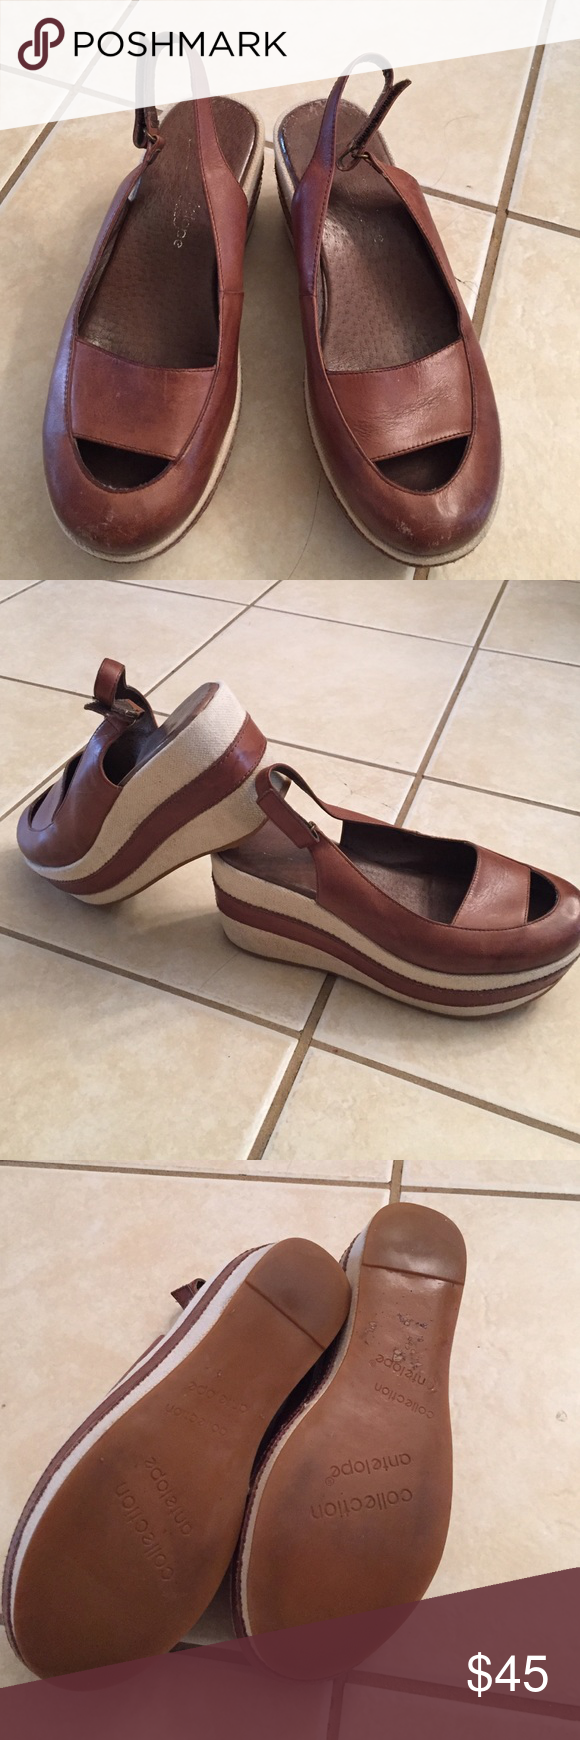 Antelope closed toe wedges Good condition, some normal wear, see pictures, beautiful versatile rust/nutmeg color. Velcro adjustable strap. Size equates to a 7.5/8. antelope Shoes Wedges